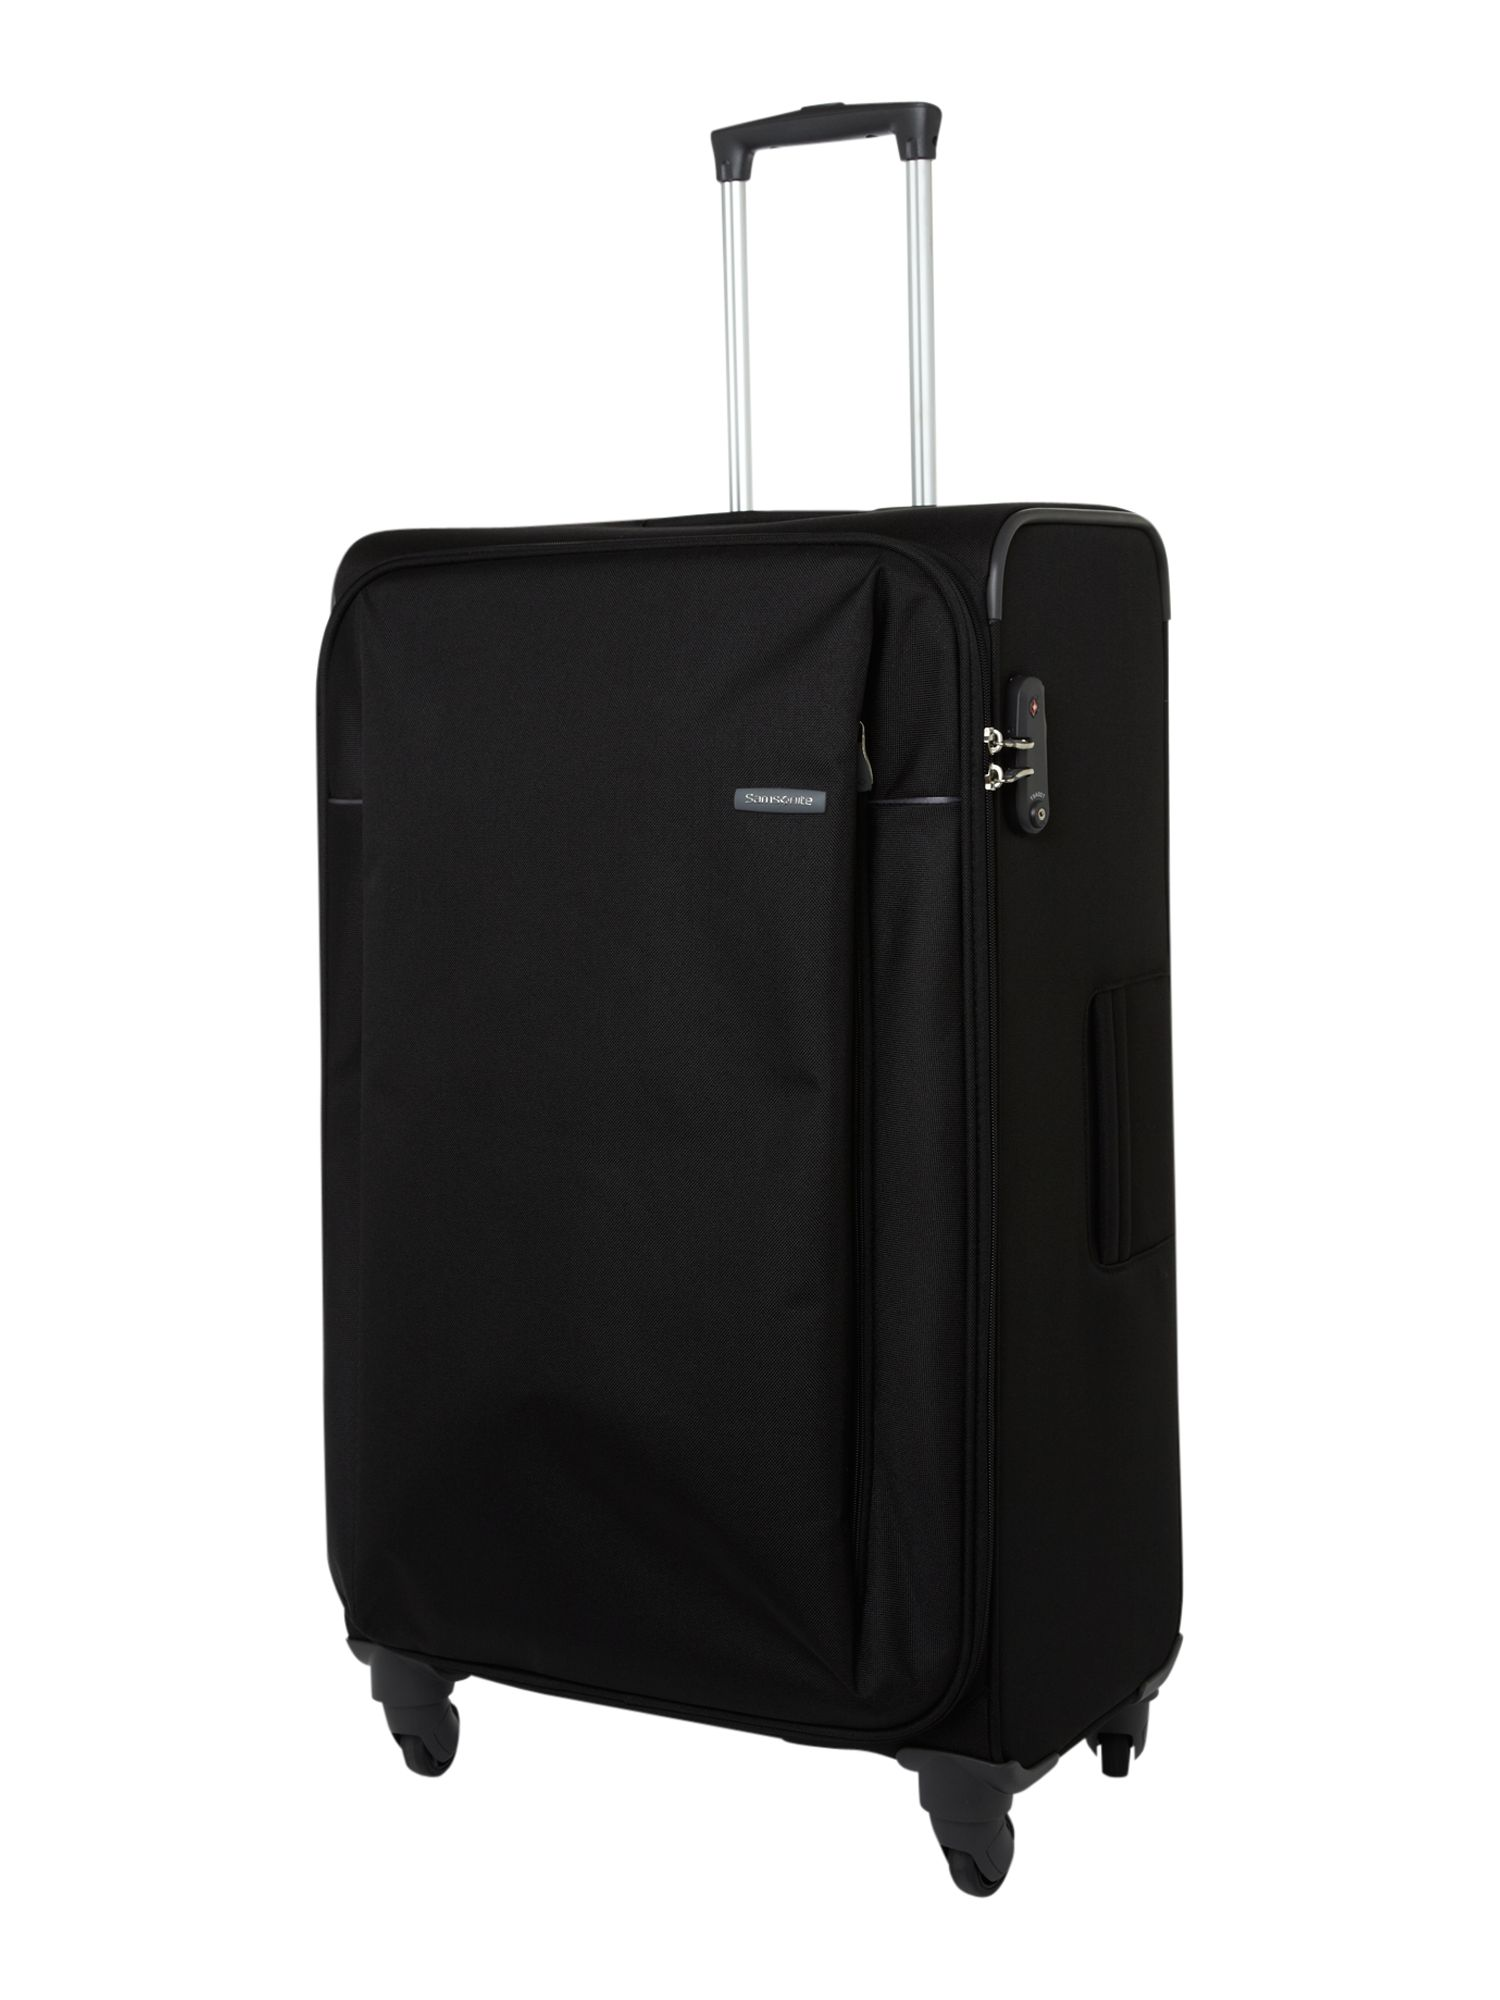 Samsonite S-Cape2 Range